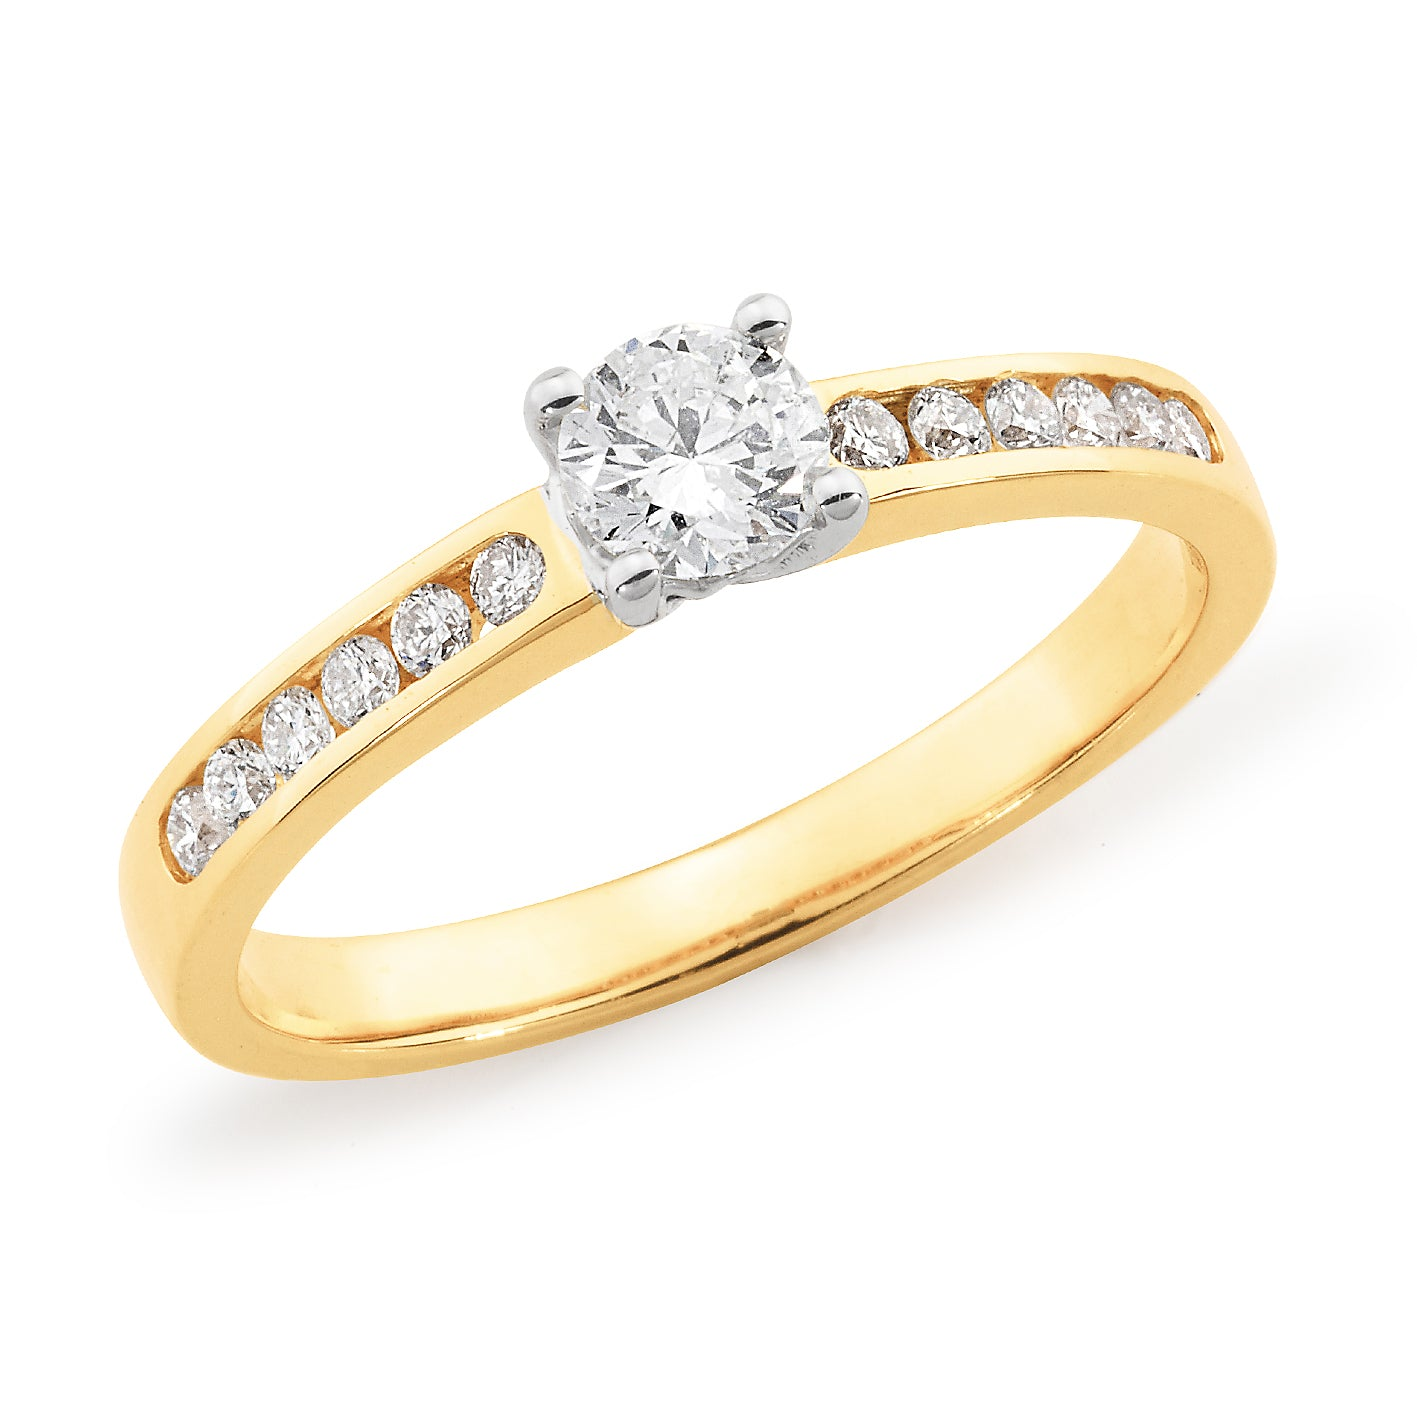 18ct Gold Solitaire & Channel Set Ring